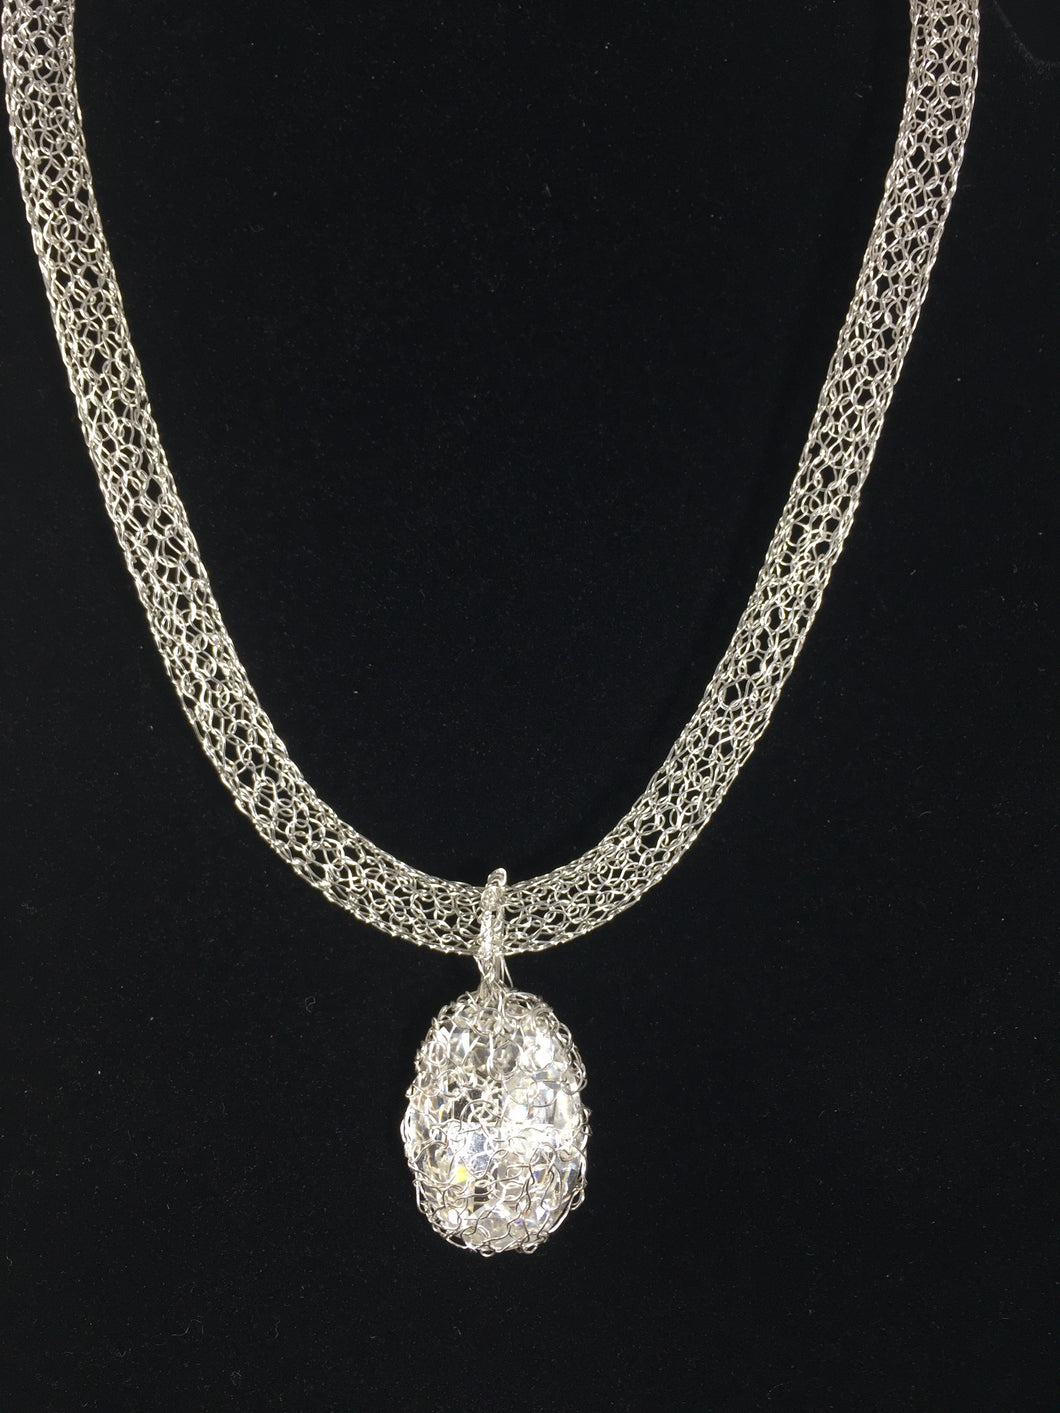 Stunning Swarovski crystal necklace